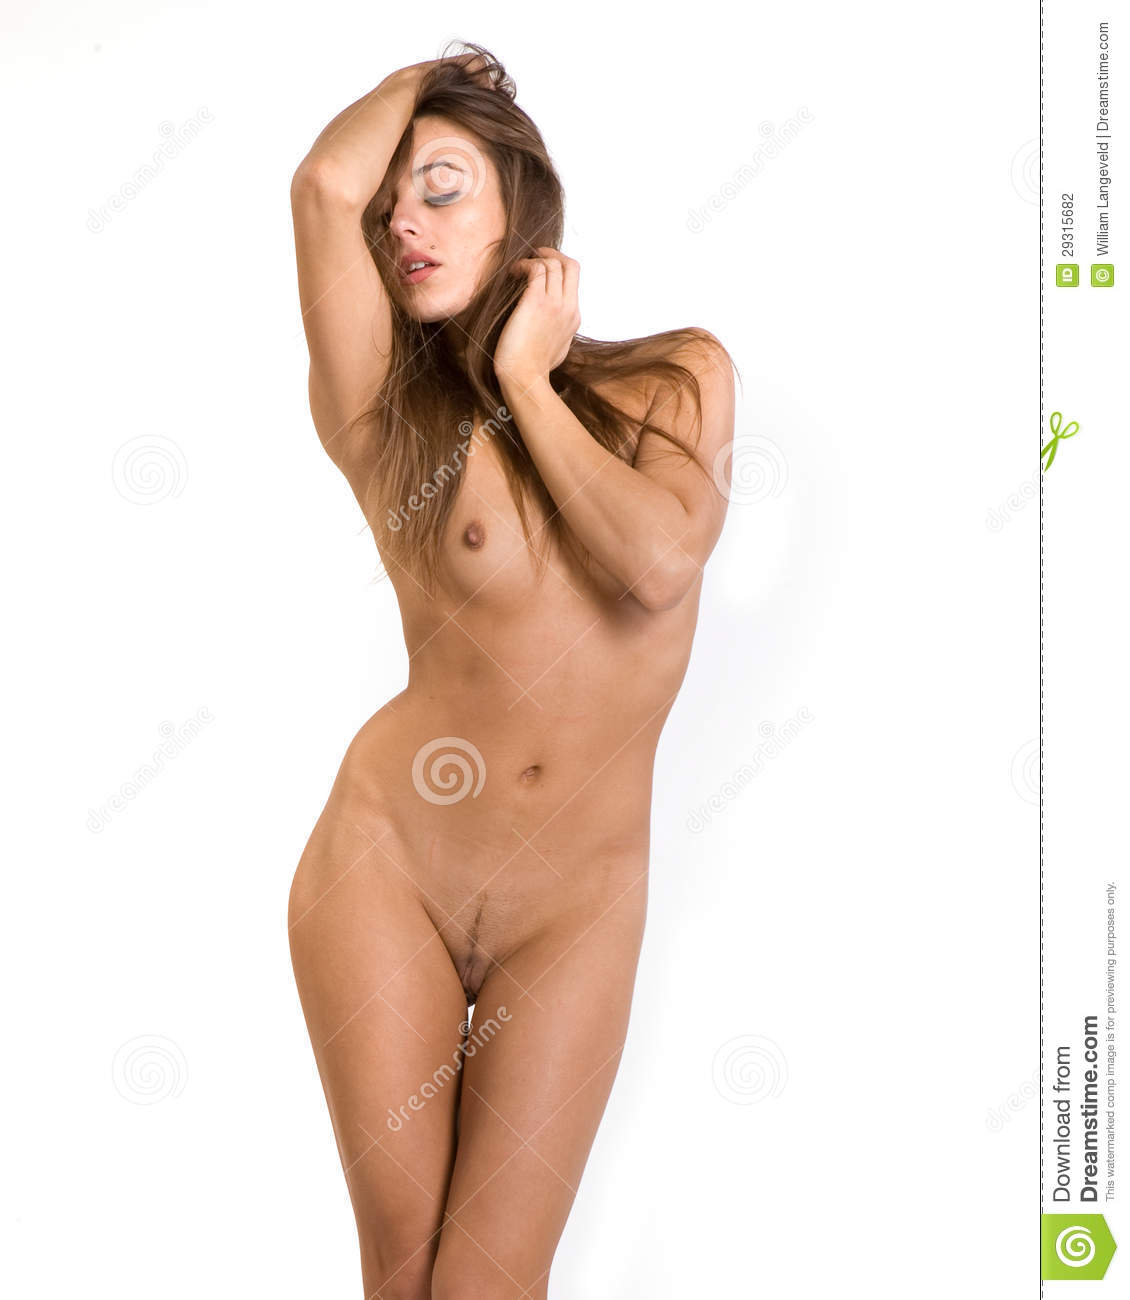 Women beautiful white background nude